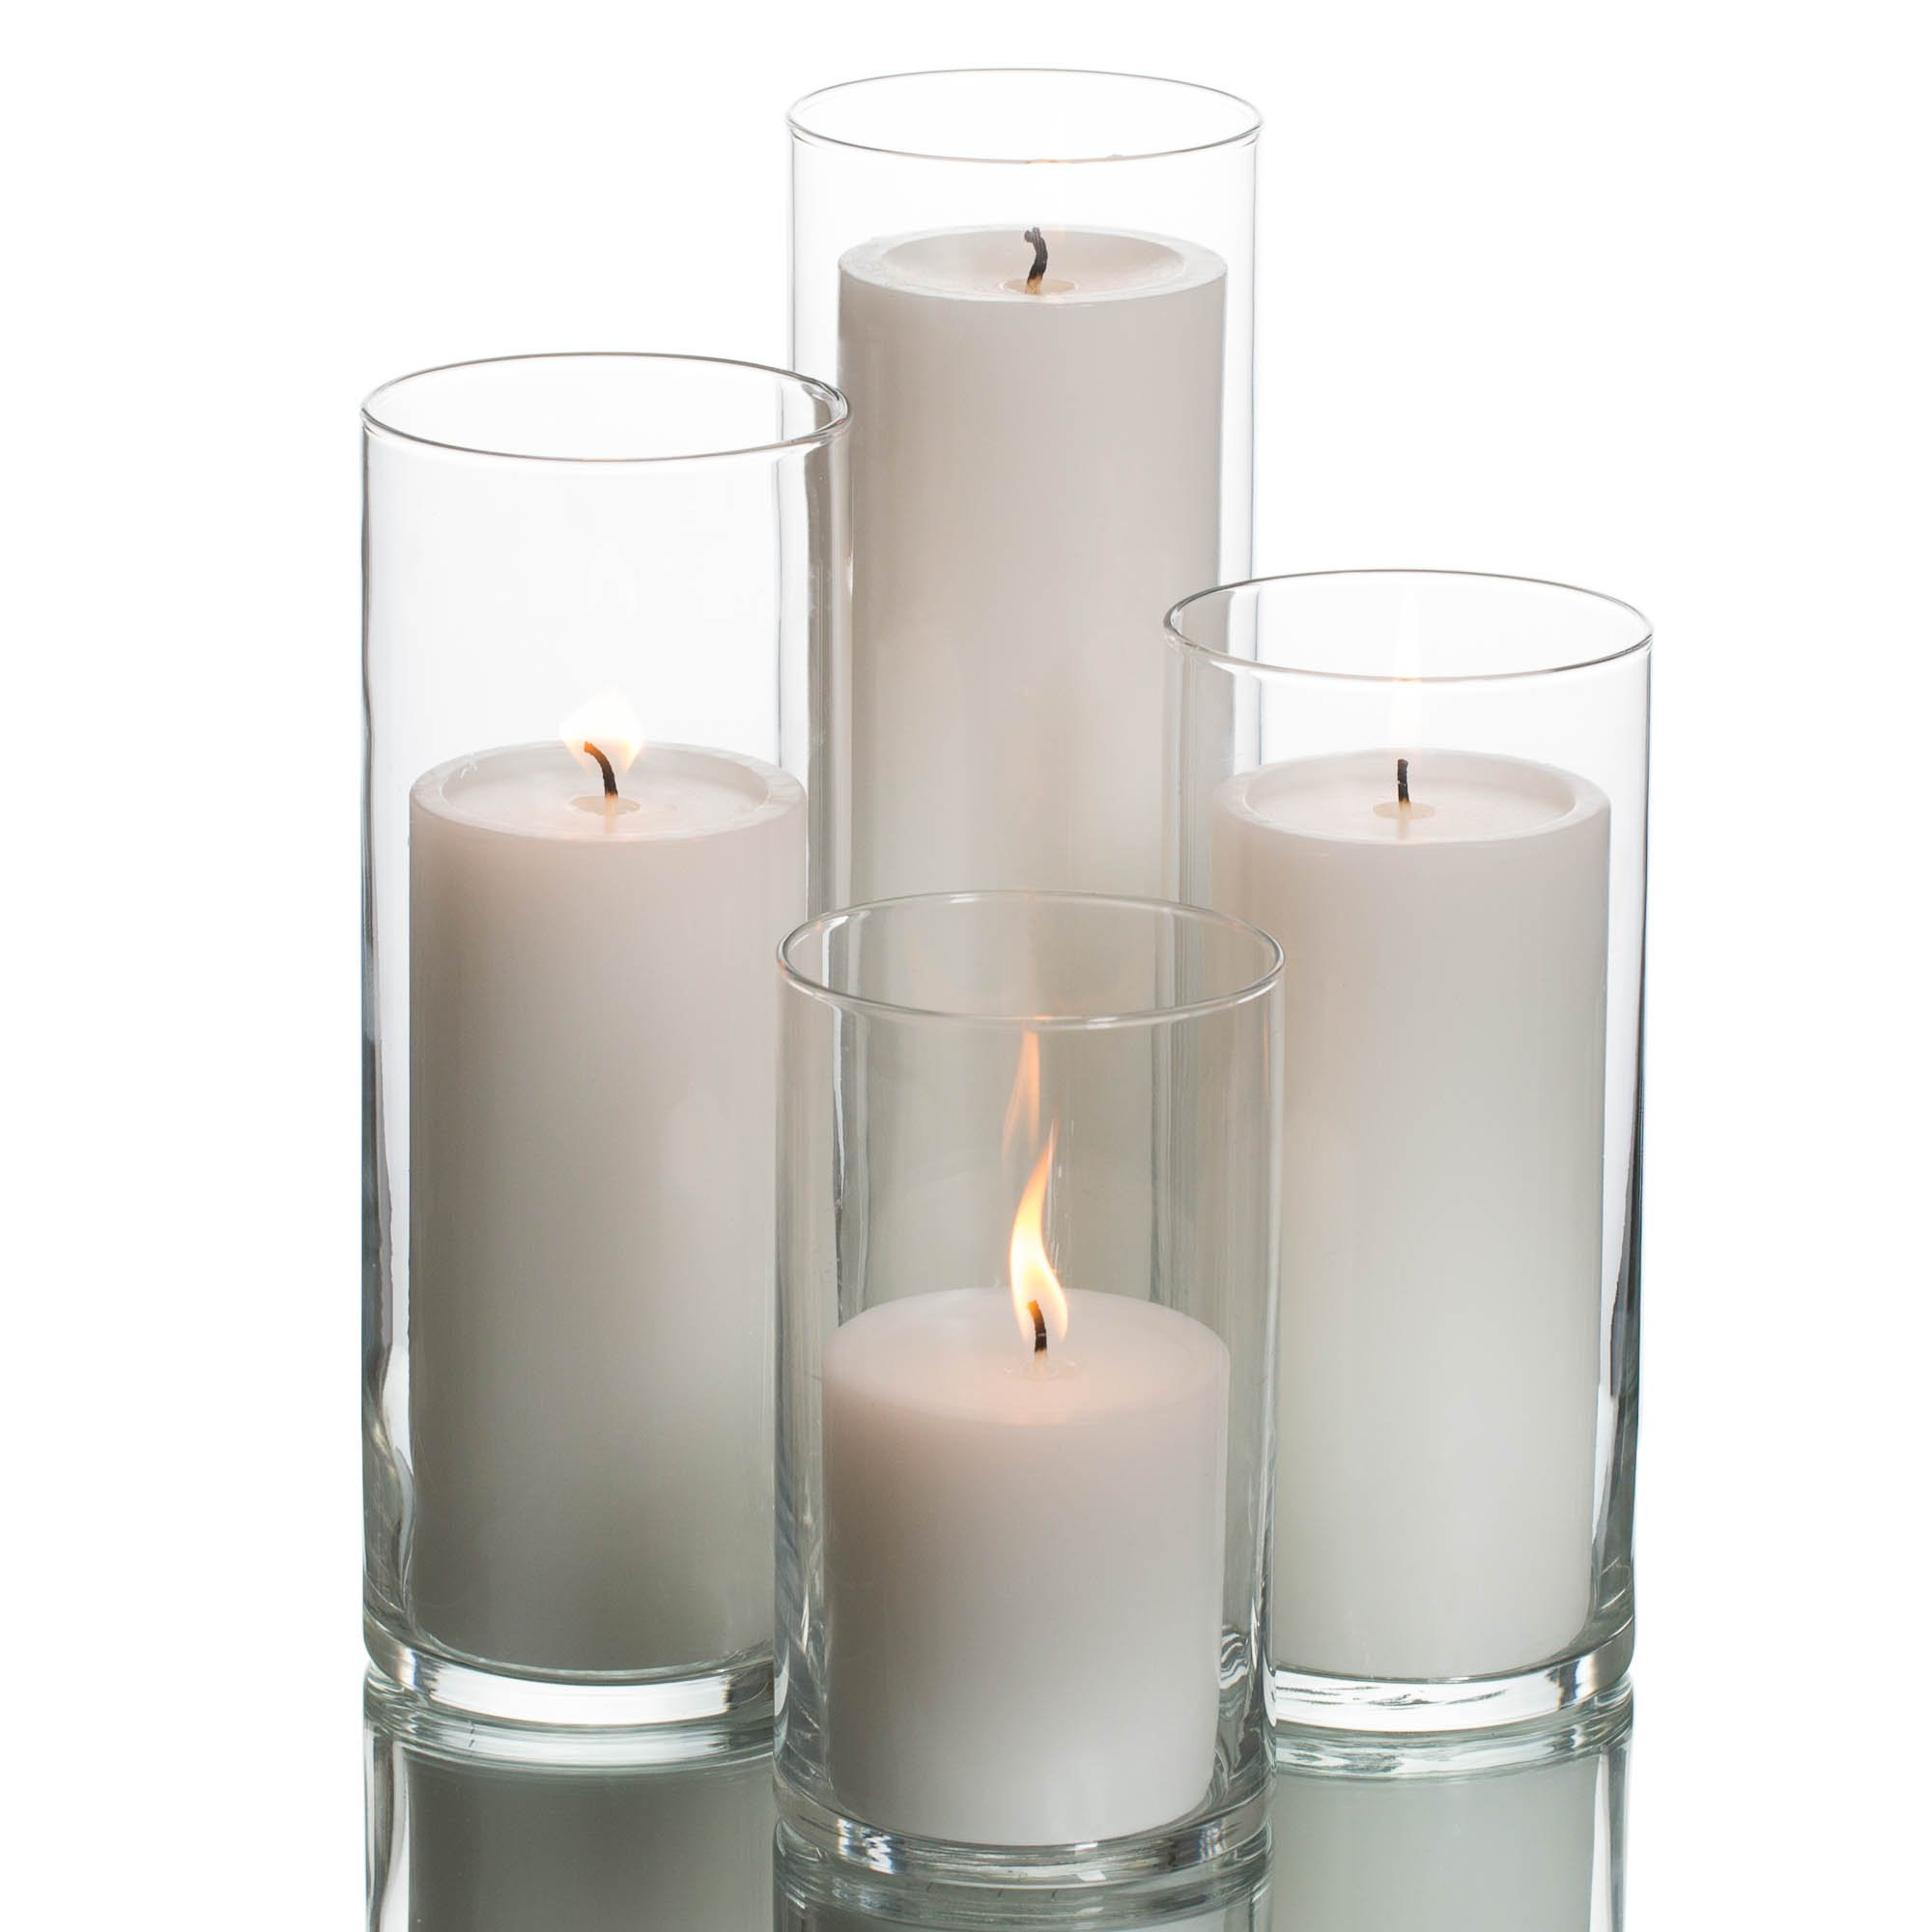 Eastland Cylinder Pillar Holder & Richland Pillar Candles White Set of 48 by Richland